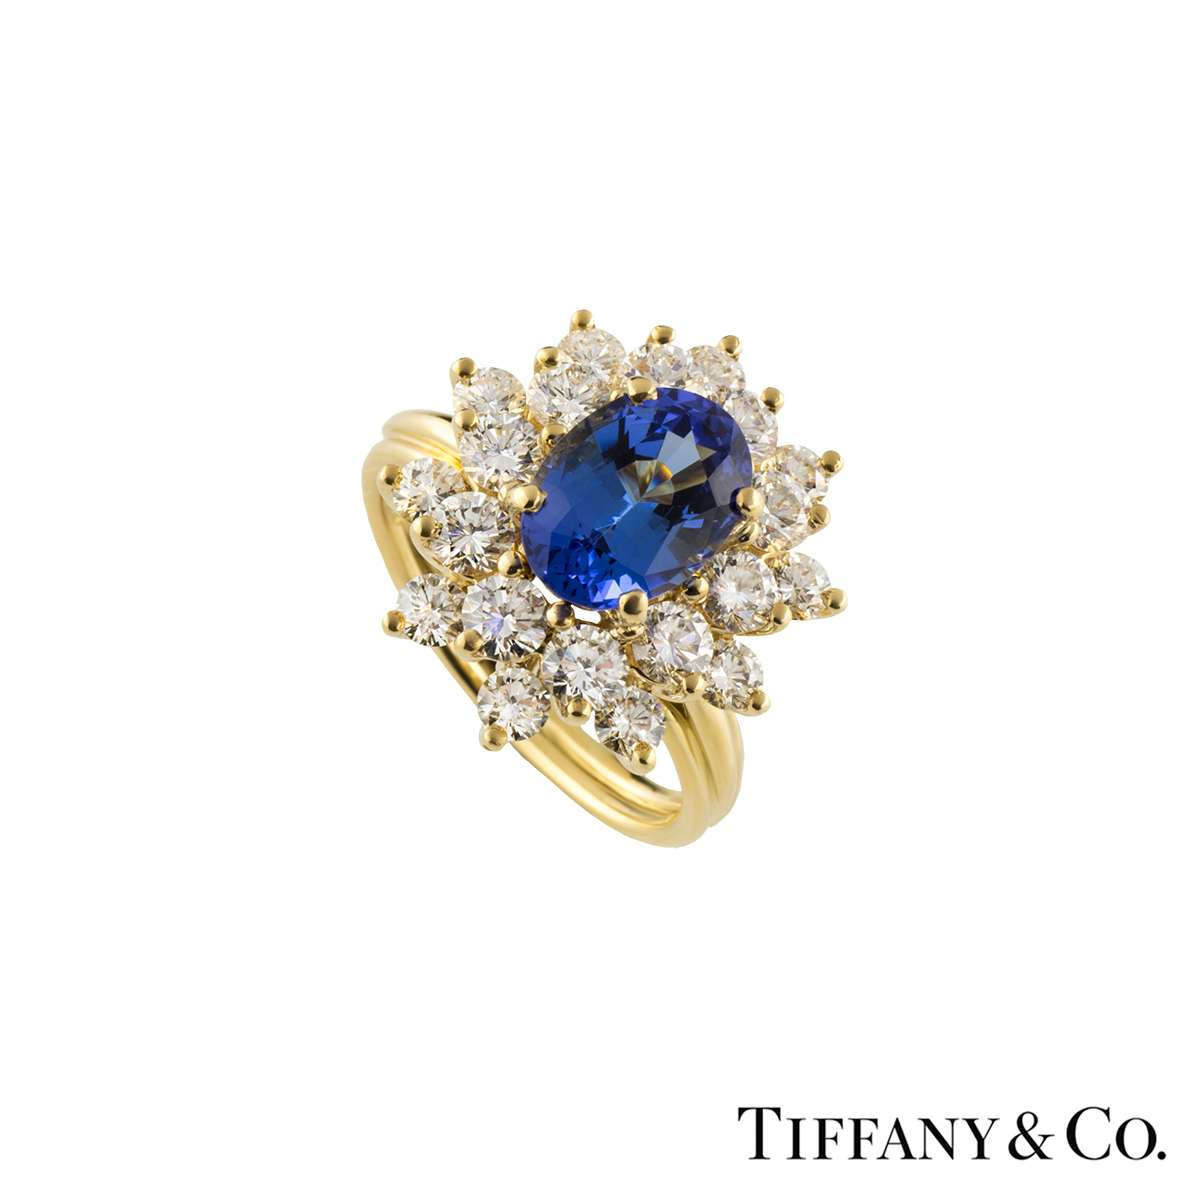 Tiffany & Co. Yellow Gold Tourmaline and Diamond Ring